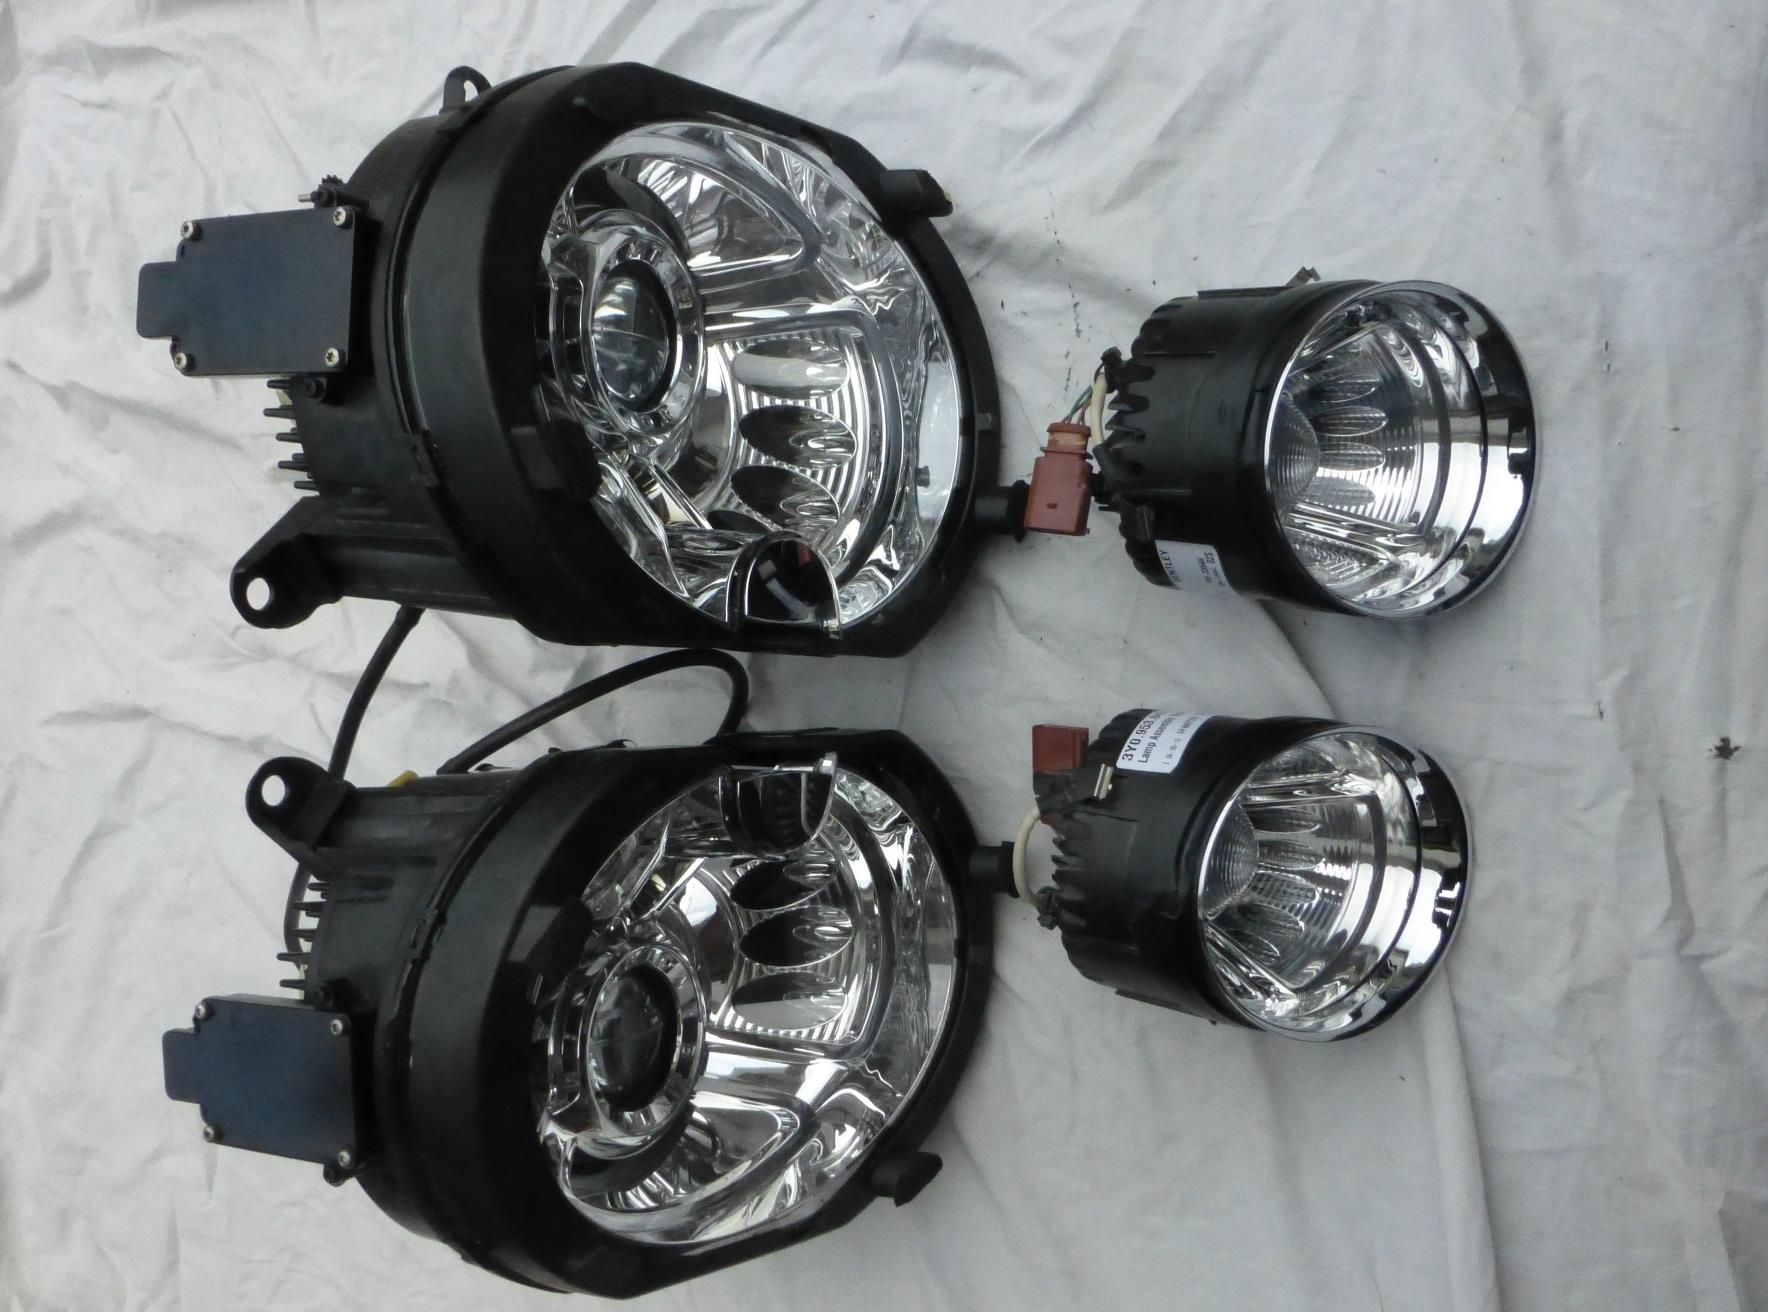 2011 2012 2013 2014 2015 2016 Bentley Mulsanne Complete Front Headlights Headlamps Turn Signal Lamps - Used Auto Parts Store | LA Global Parts